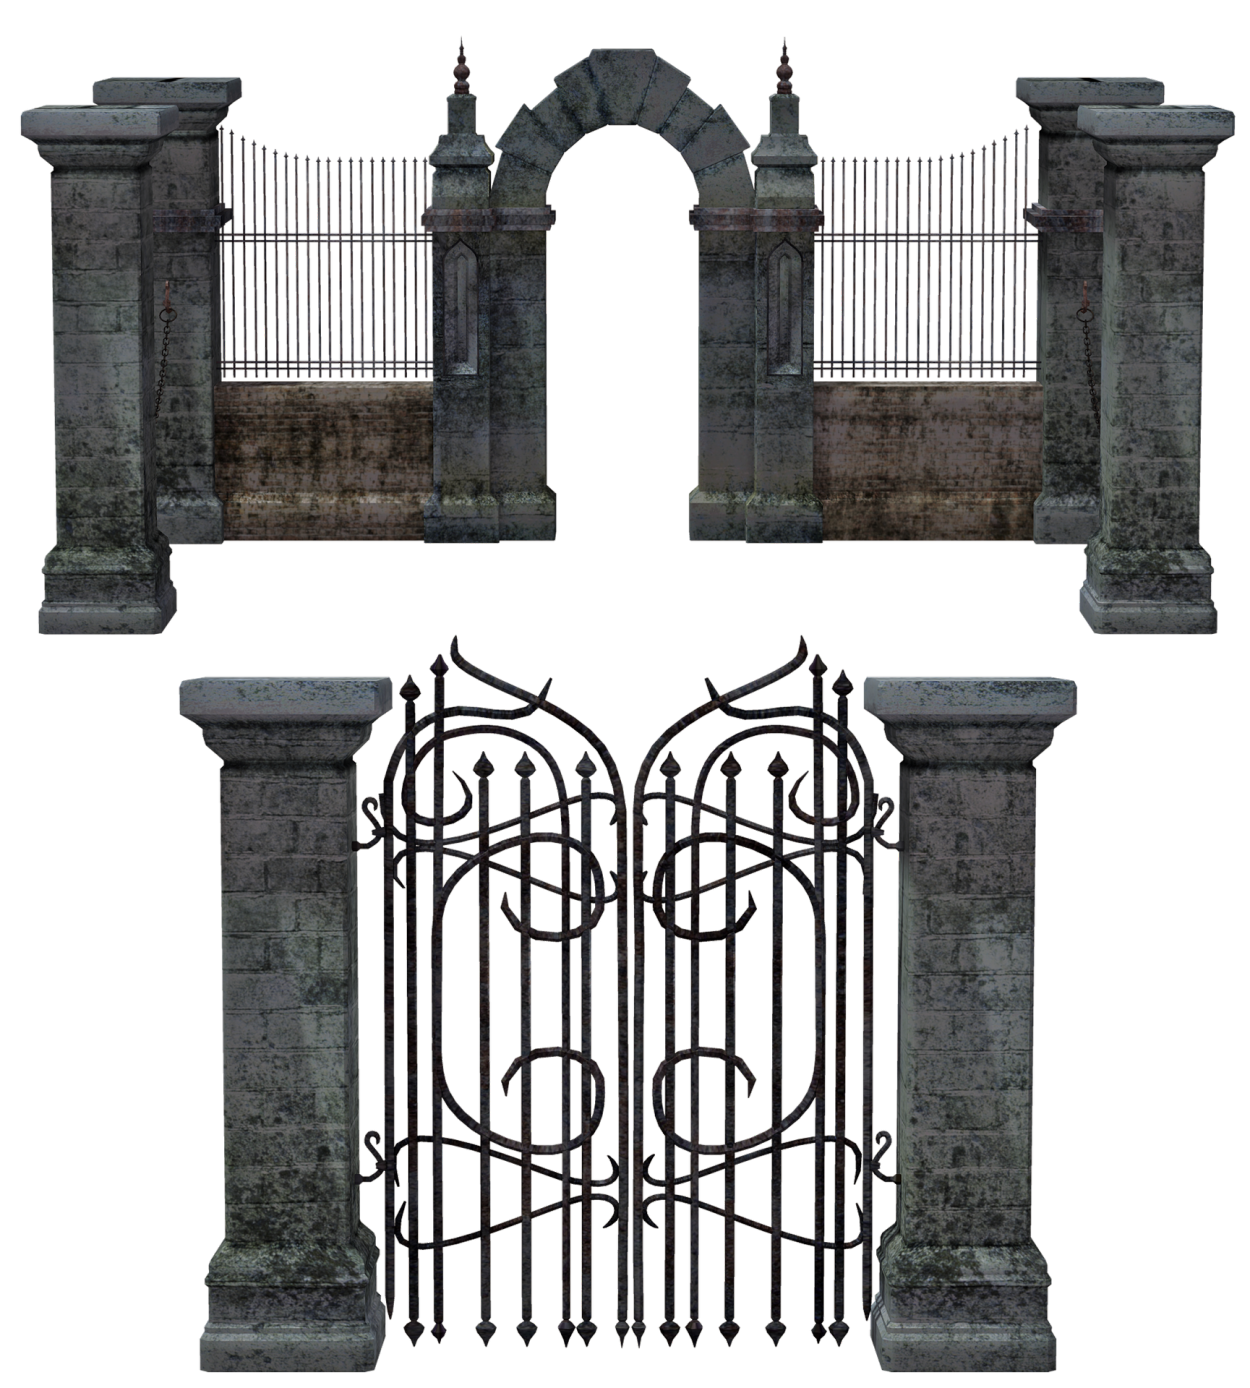 gate-3369895_1920.png